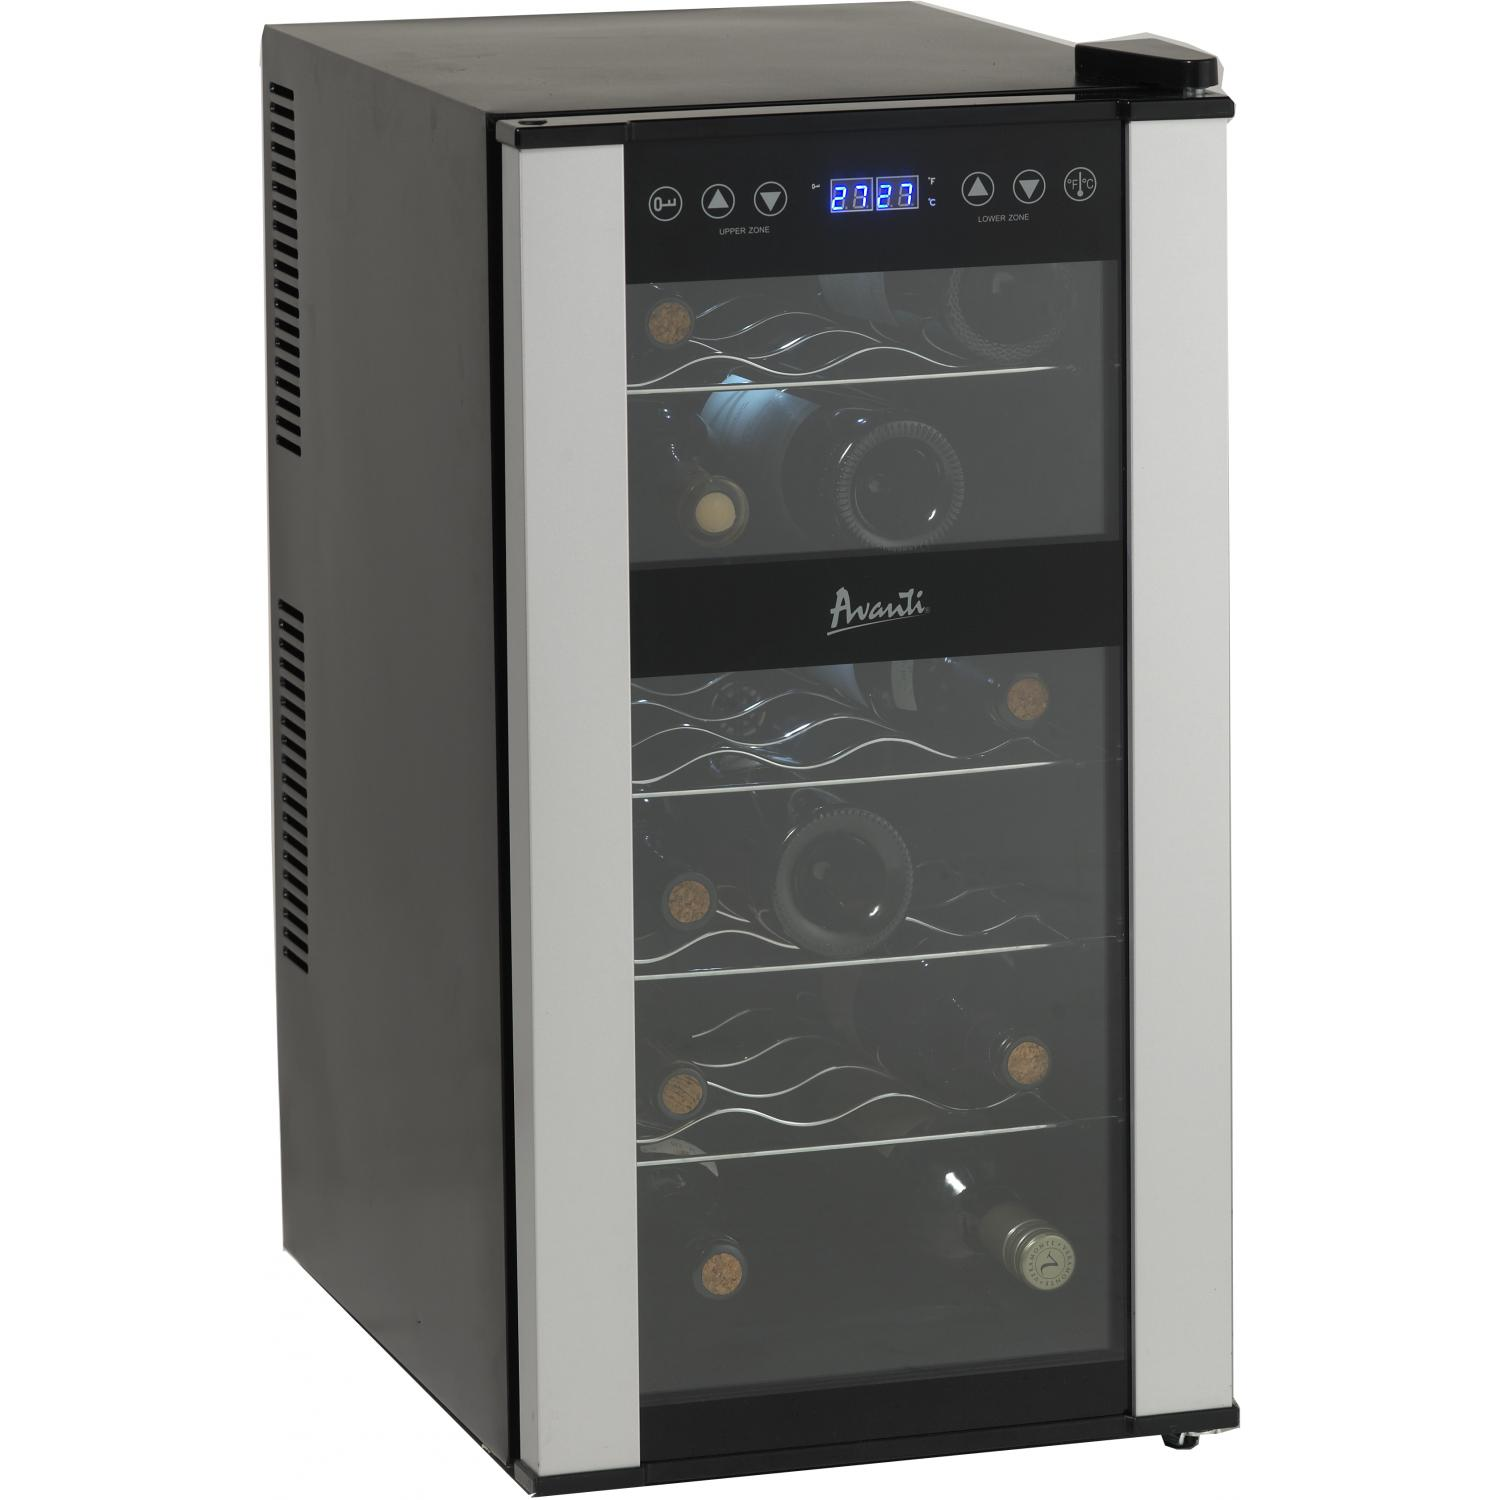 Picture of Avanti 18 Bottle Thermoelectric Freestanding Dual Zone Wine Chiller - Black - EWC1802DZ